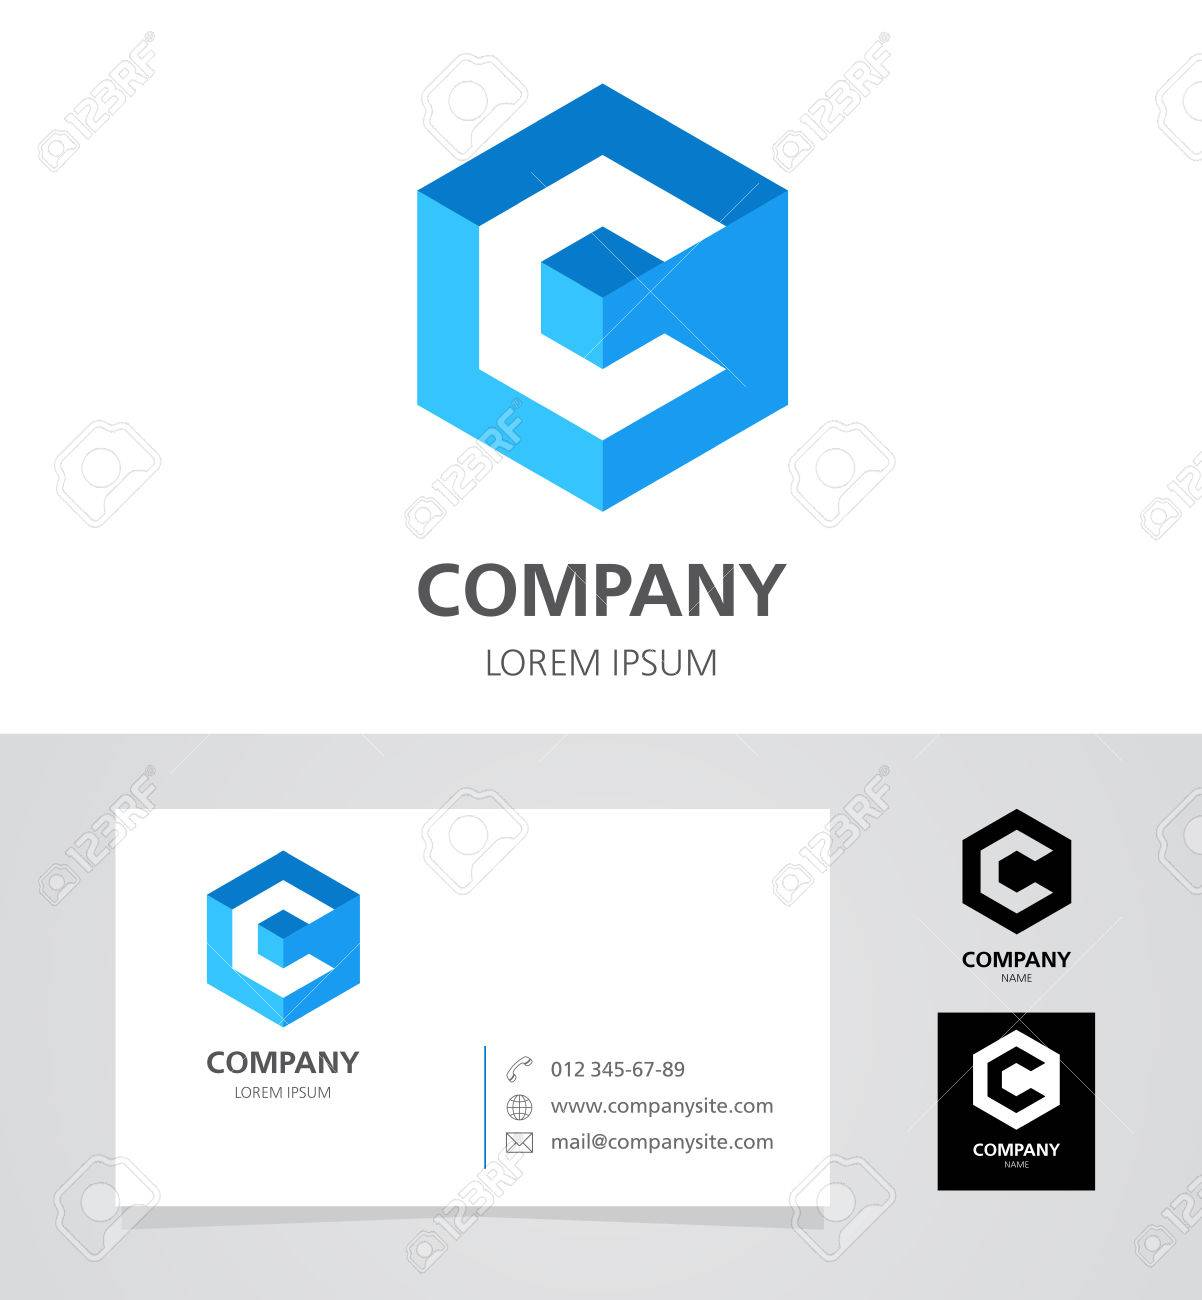 Letter c logo design element with business card illustration letter c logo design element with business card illustration stock vector 61826095 colourmoves